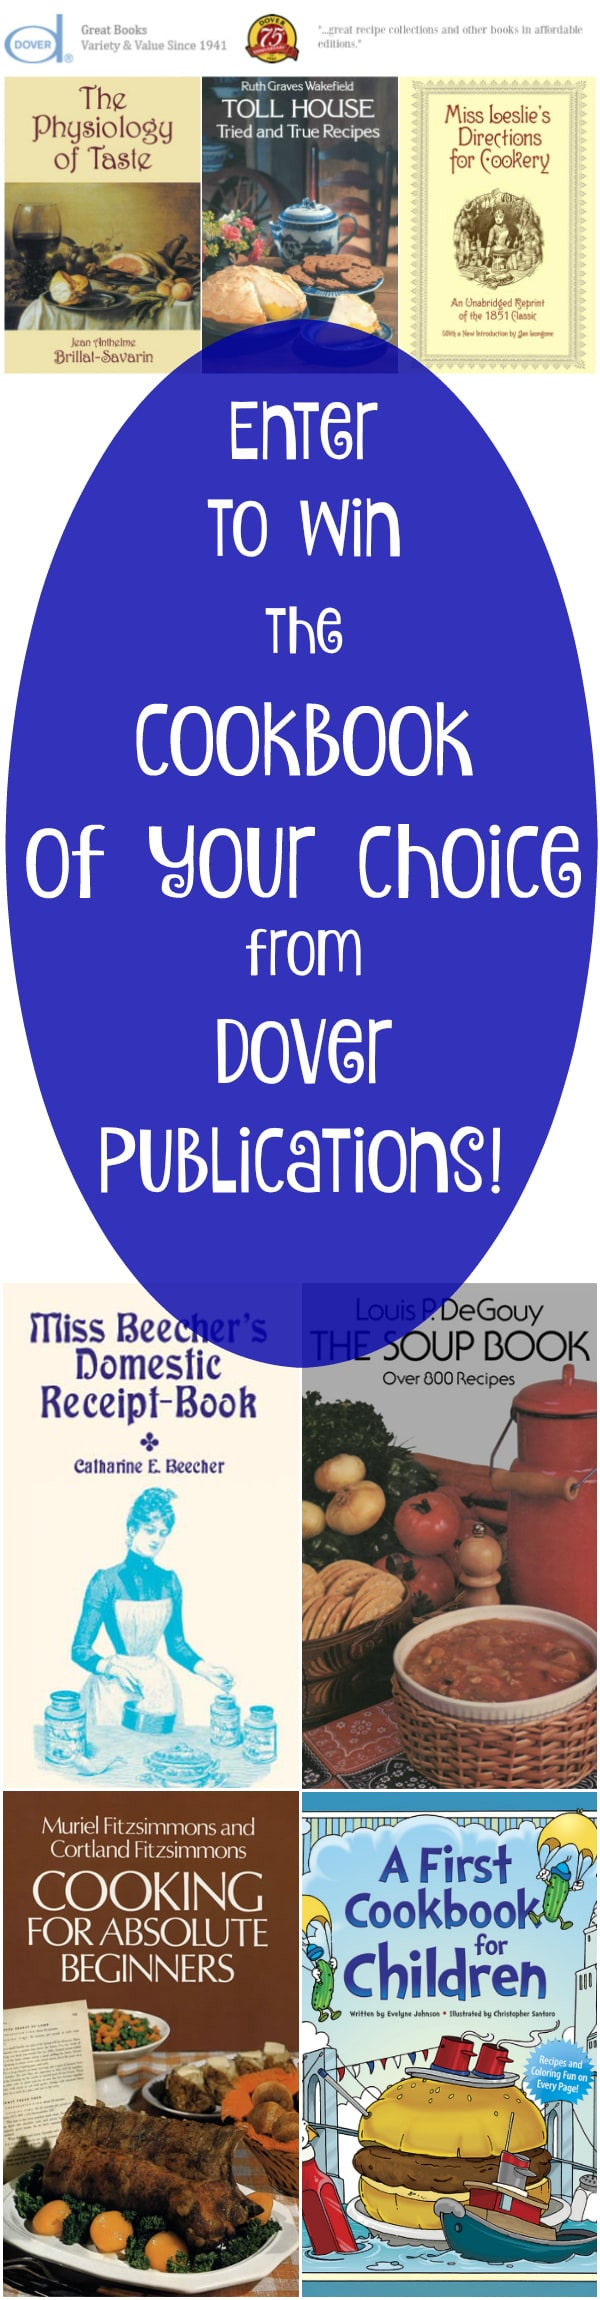 Read about client Dover Publications and enter to win the Dover cook book title of your choice through October 26, 2016! | pastrychefonline.com